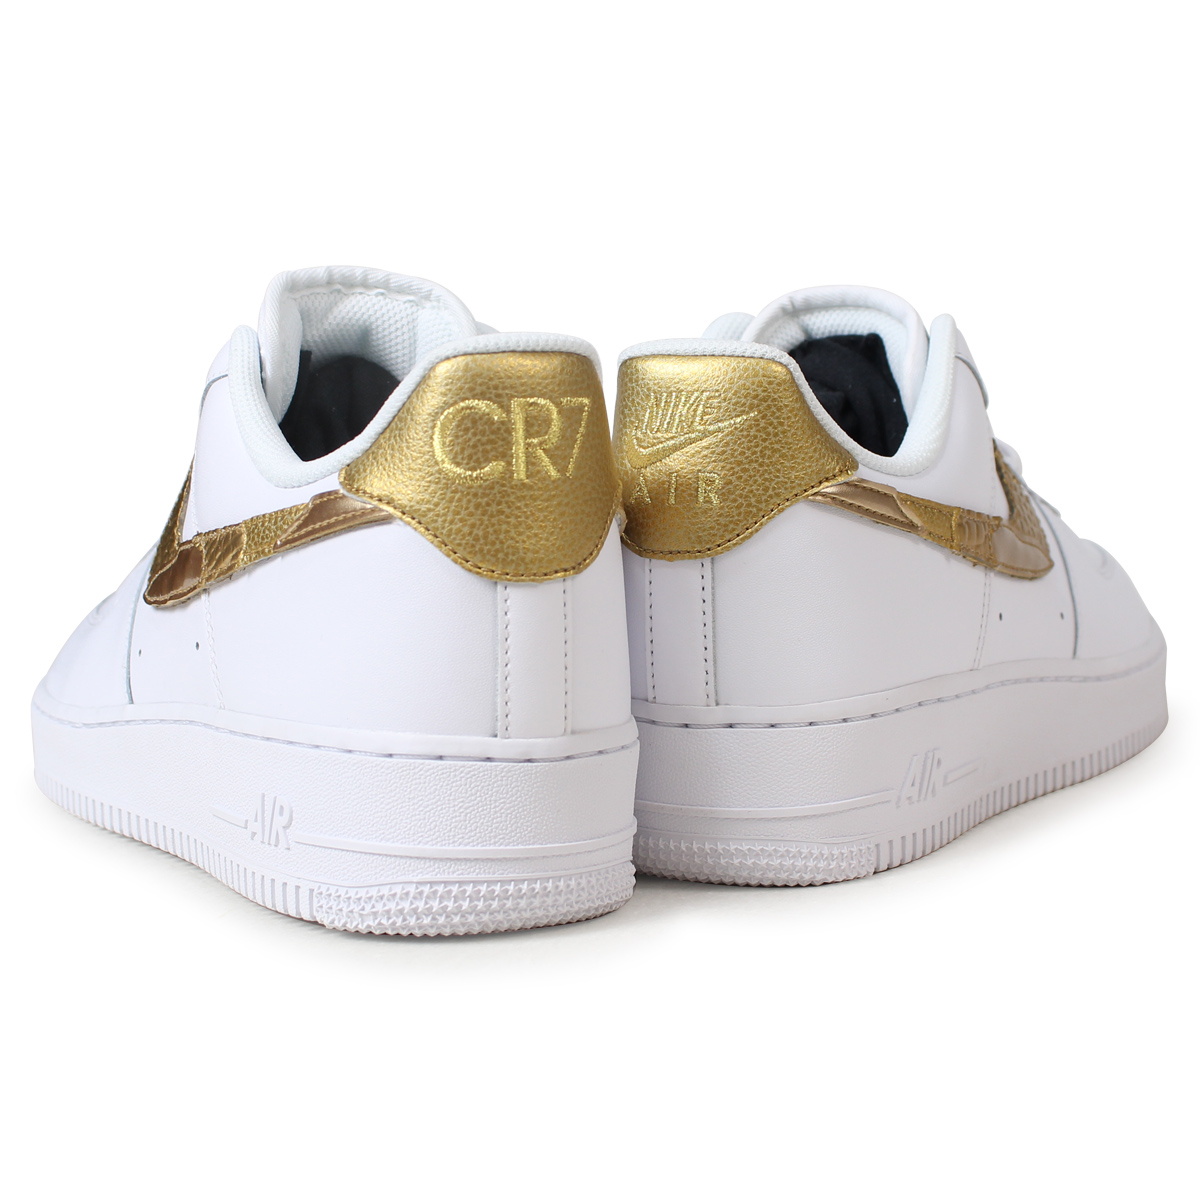 premium selection 77412 23796 ... NIKE AIR FORCE 1 CR7 GOLDEN PATCHWORK Nike air force 1 07 sneakers men  AQ0666- ...